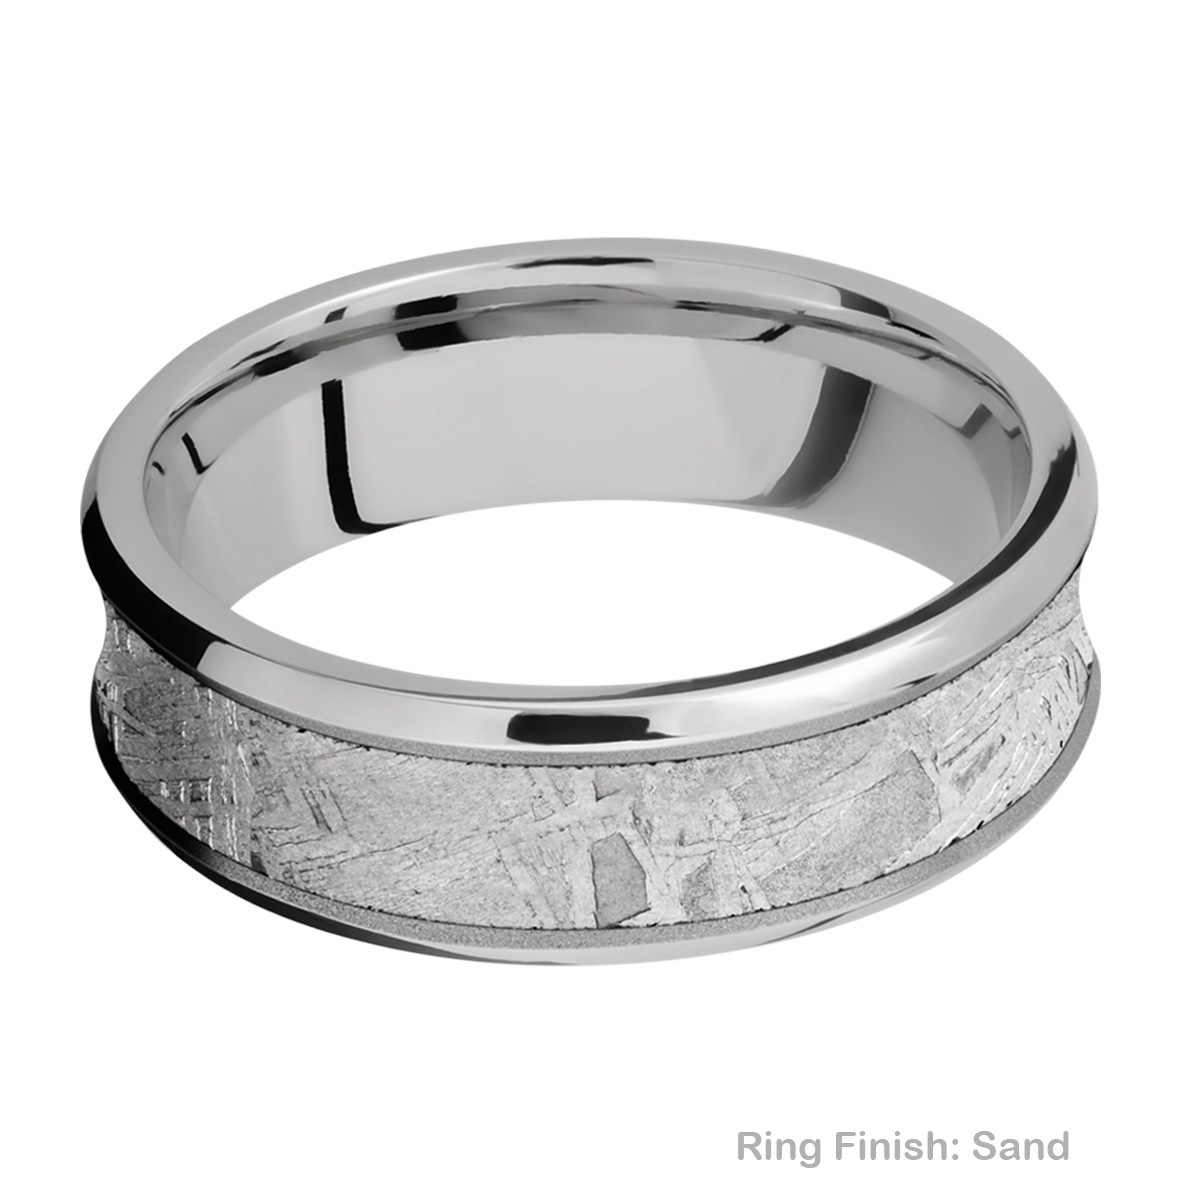 Lashbrook 7CB15/METEORITE Titanium Wedding Ring or Band Alternative View 4